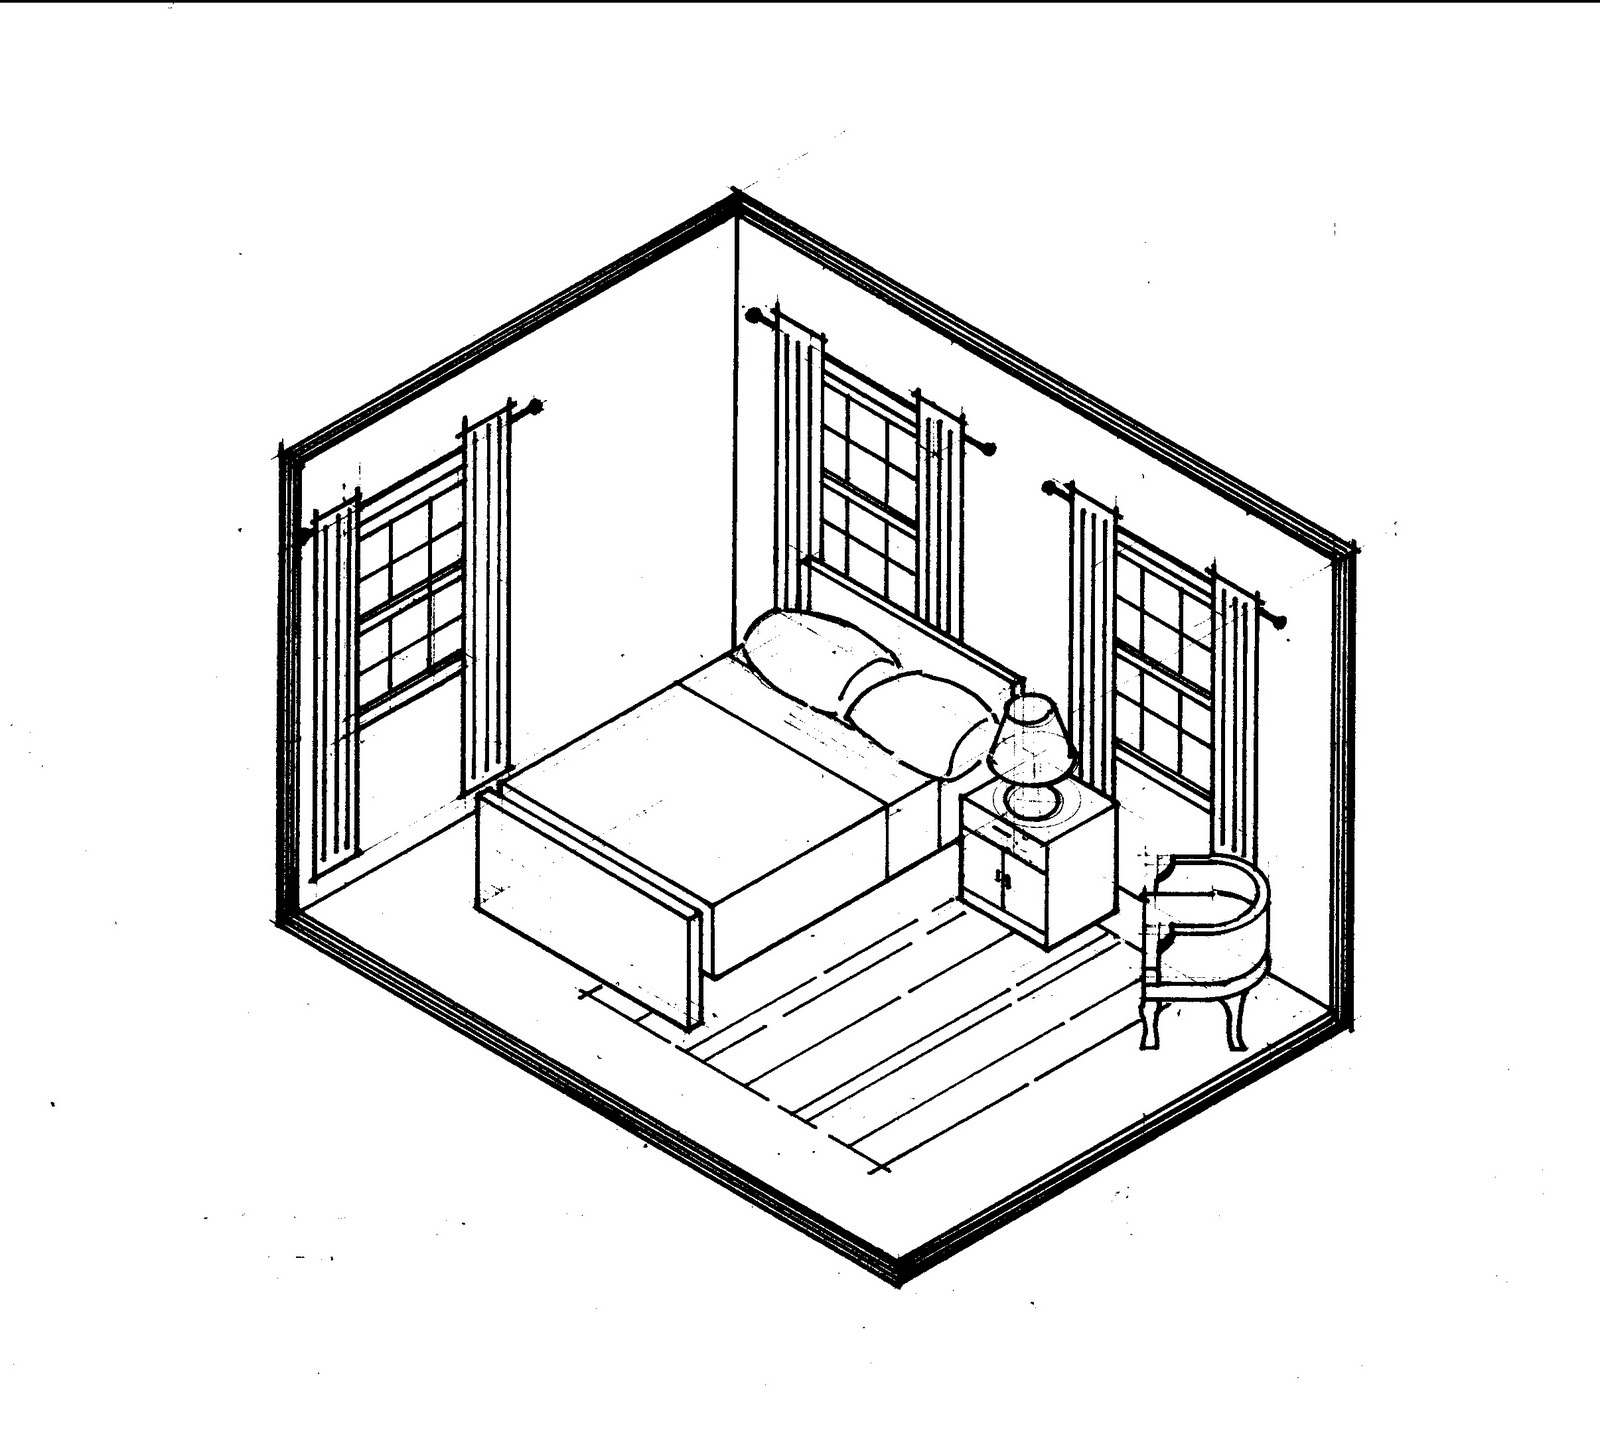 Room Perspective Drawing At Getdrawings